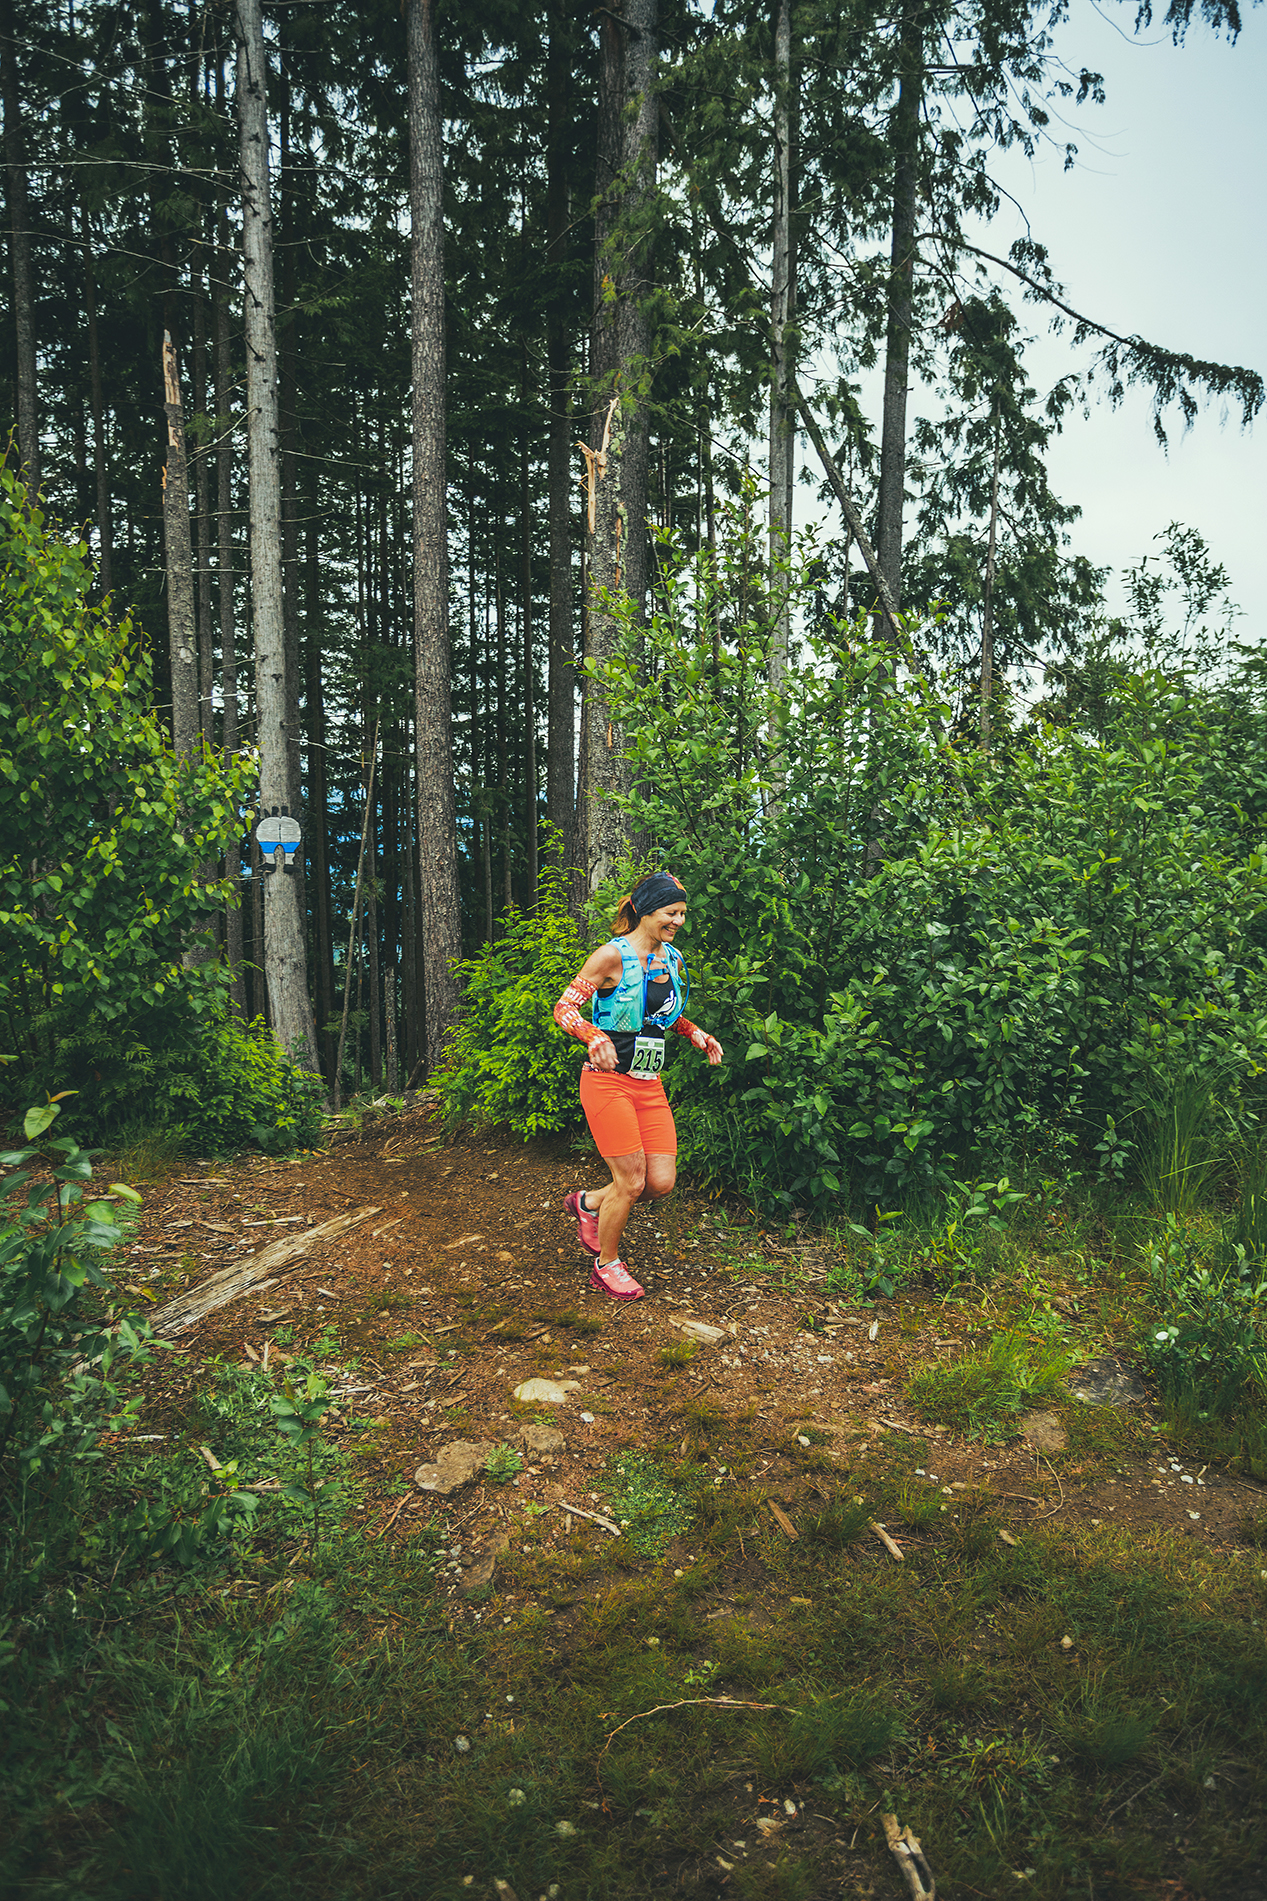 Fraser Valley Trail Races - Bear Mountain - IMG_2696 by Brice Ferre Studio - Vancouver Portrait Adventure and Athlete Photographer.jpg